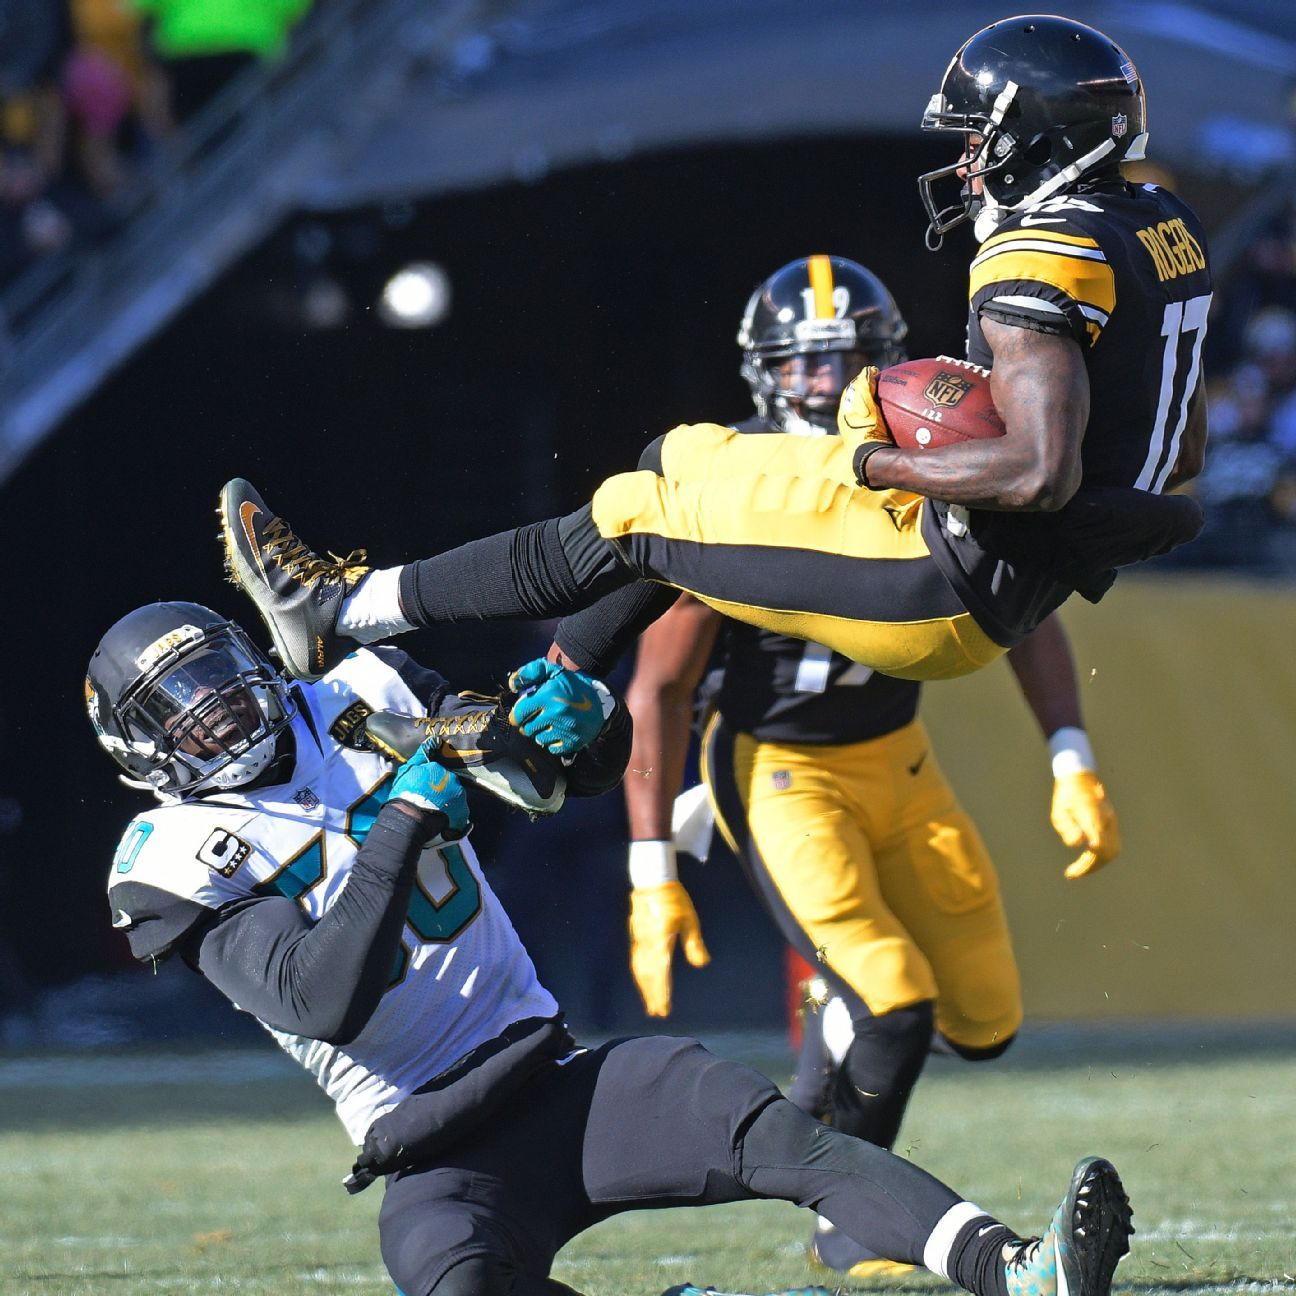 Eli Rogers, WR, Pittsburgh Steelers